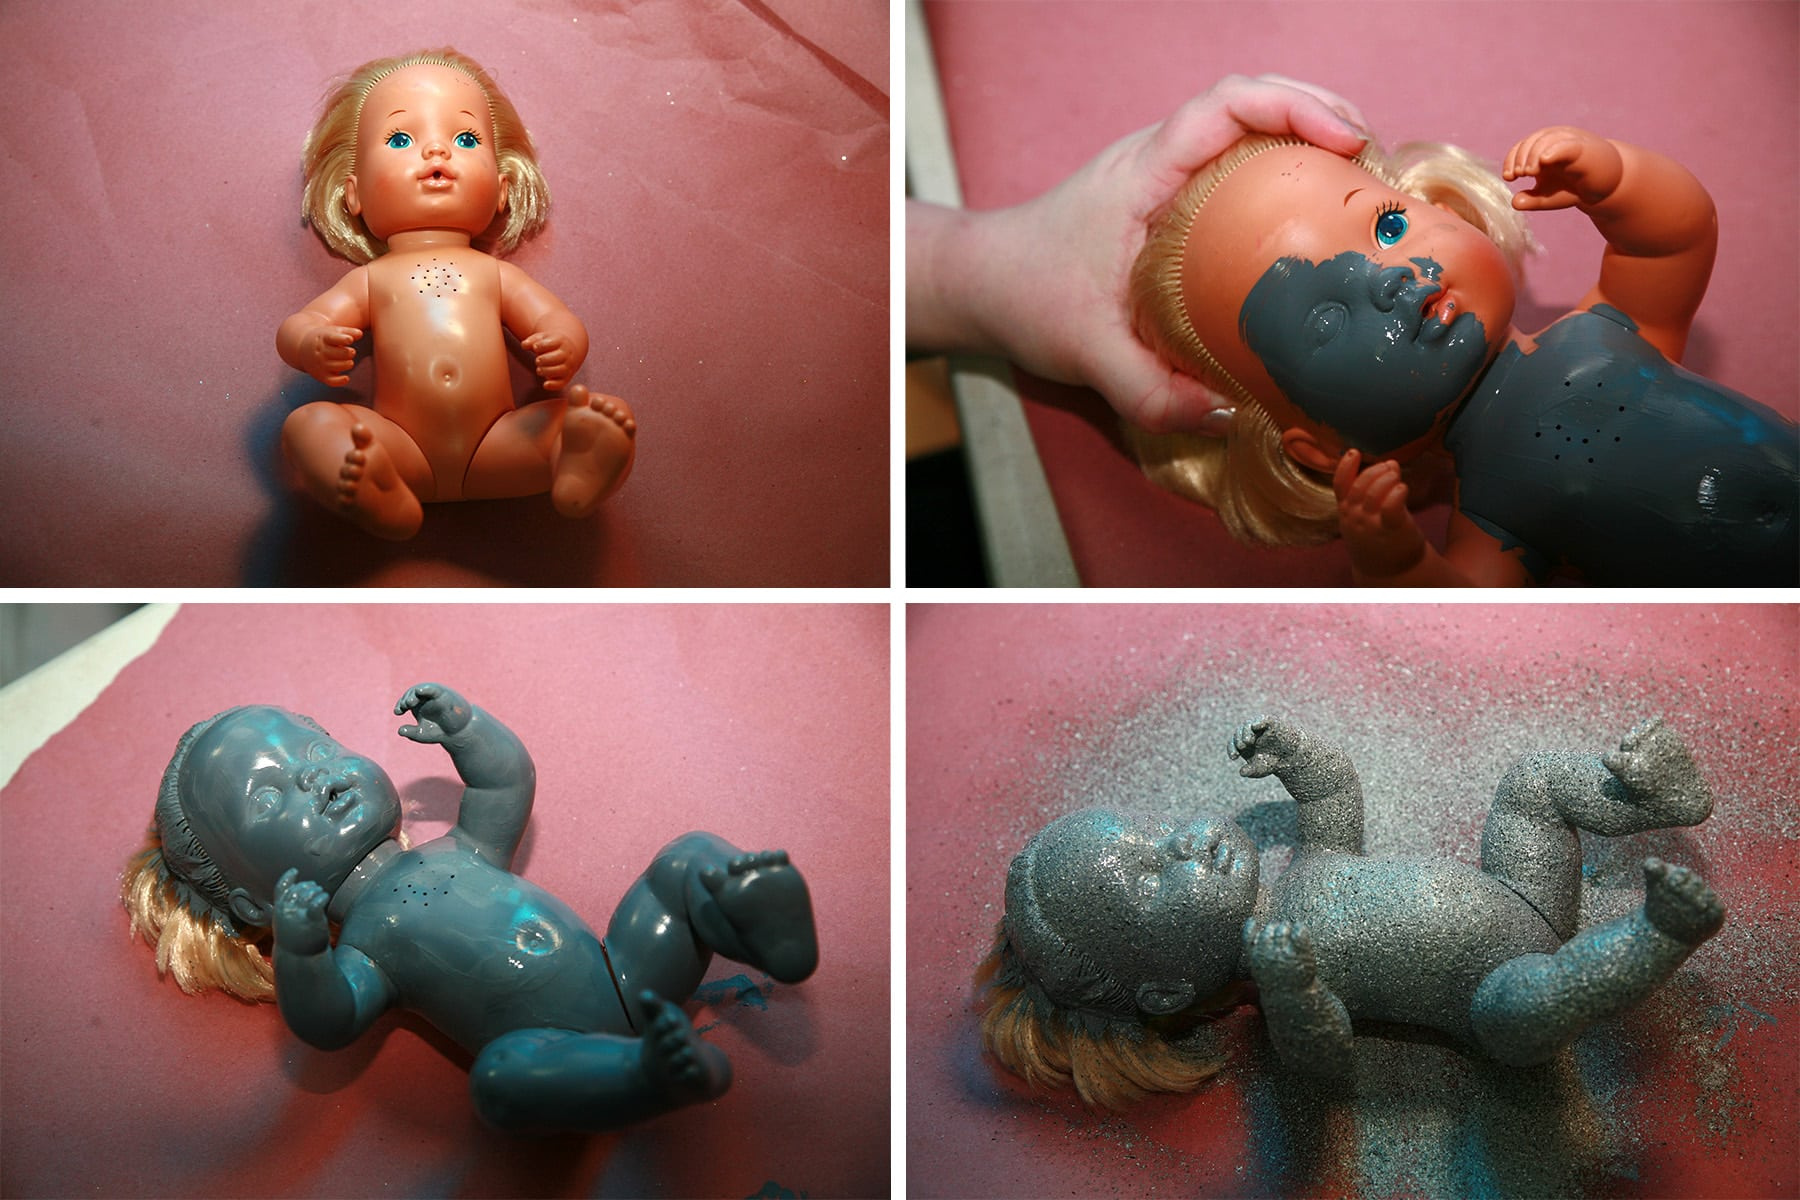 A 4 part image showing a baby doll being painted grey.